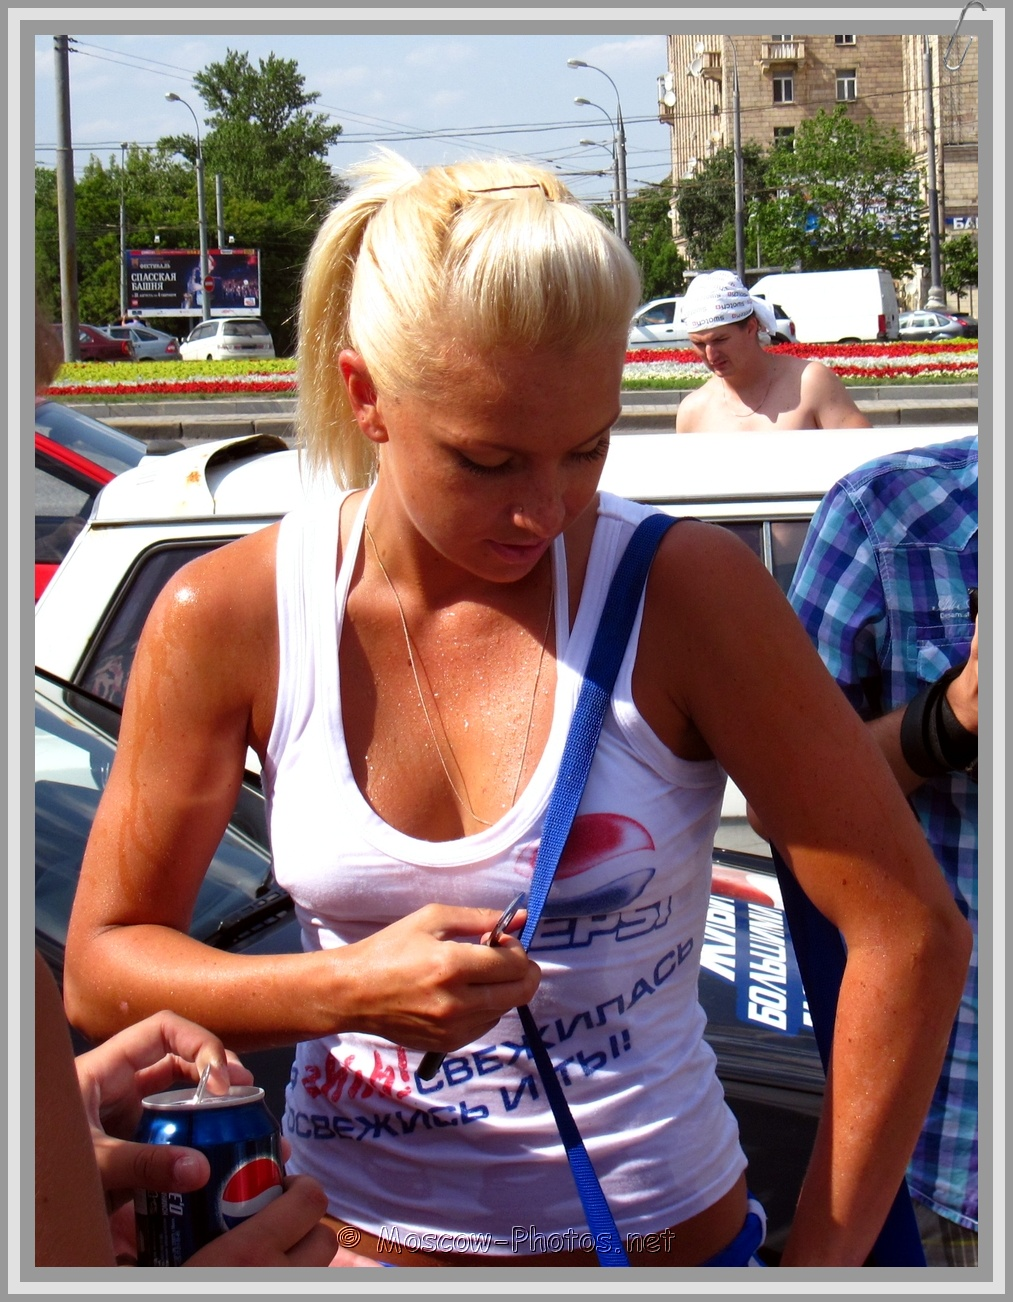 Wet Blonde Moscow Pepsi Girl